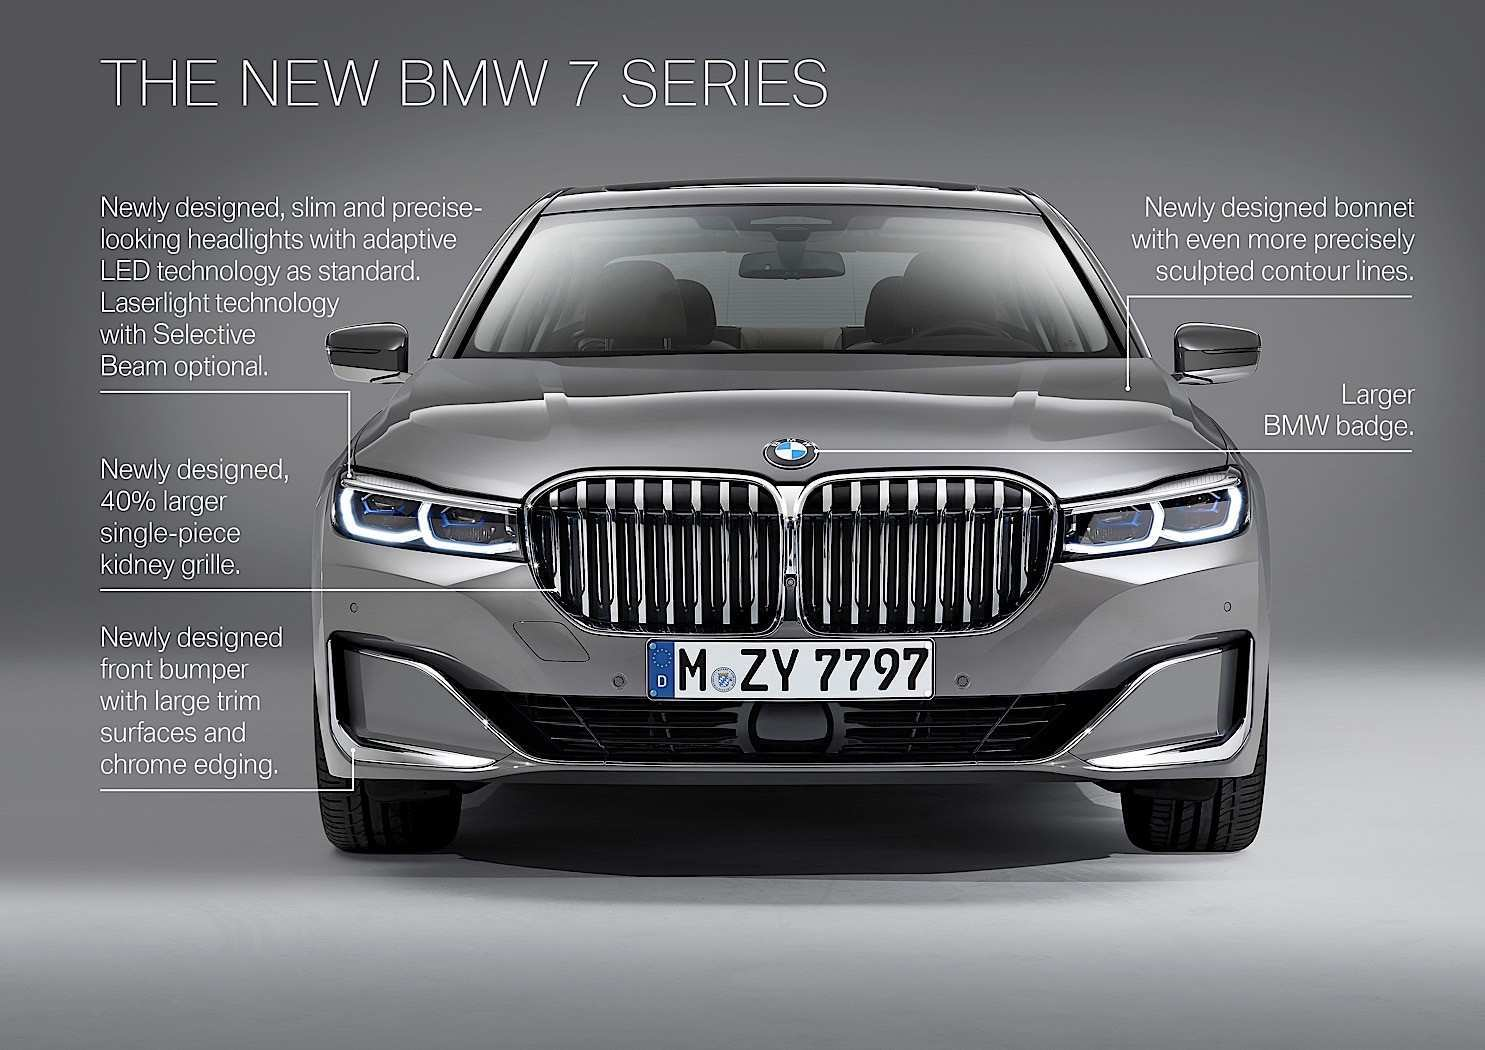 35 Concept of 2020 BMW 7 Series Lci Exterior by 2020 BMW 7 Series Lci